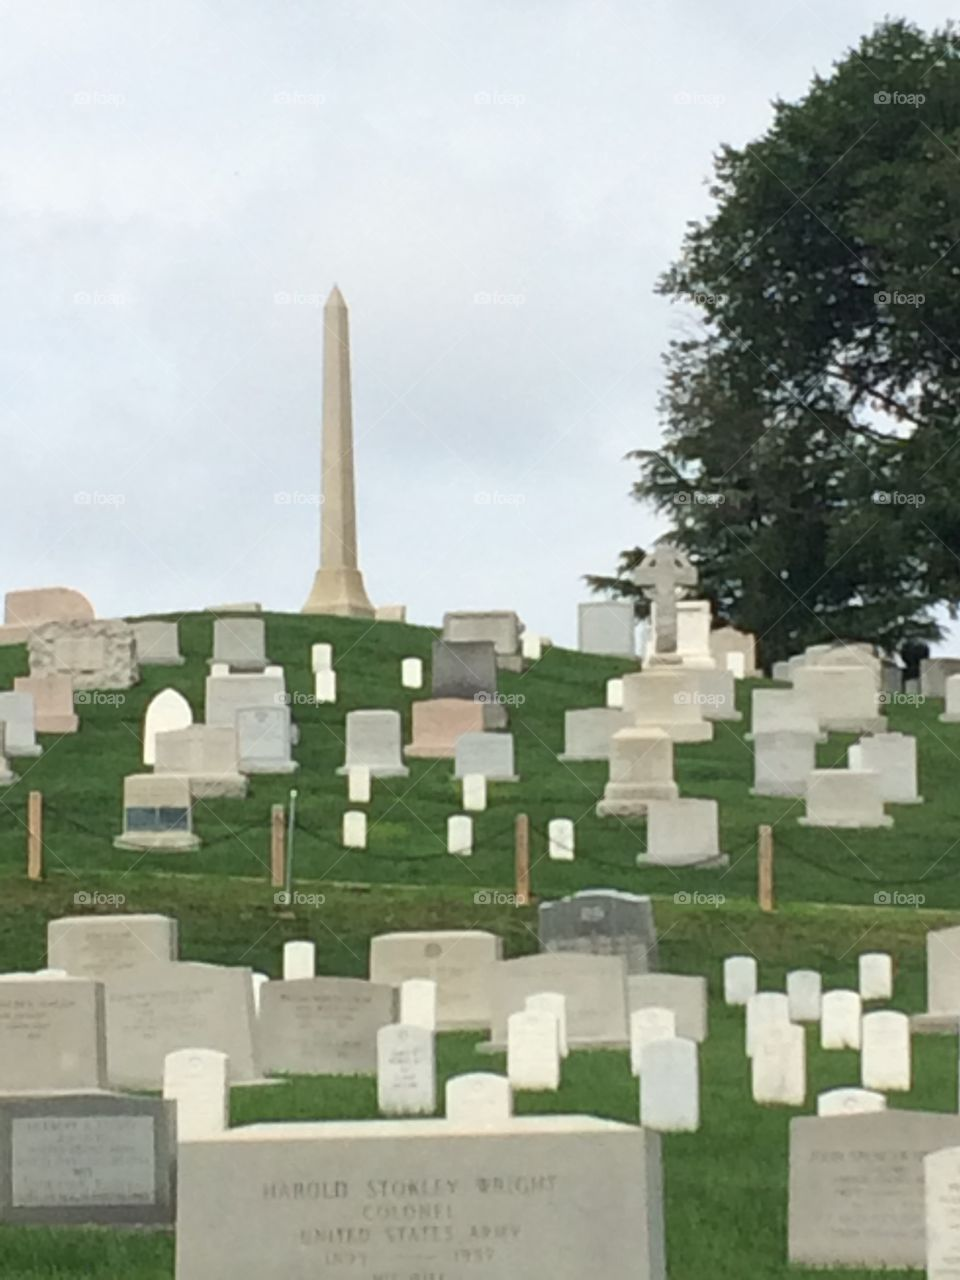 Washington Monument overlooking Arlington cemetery